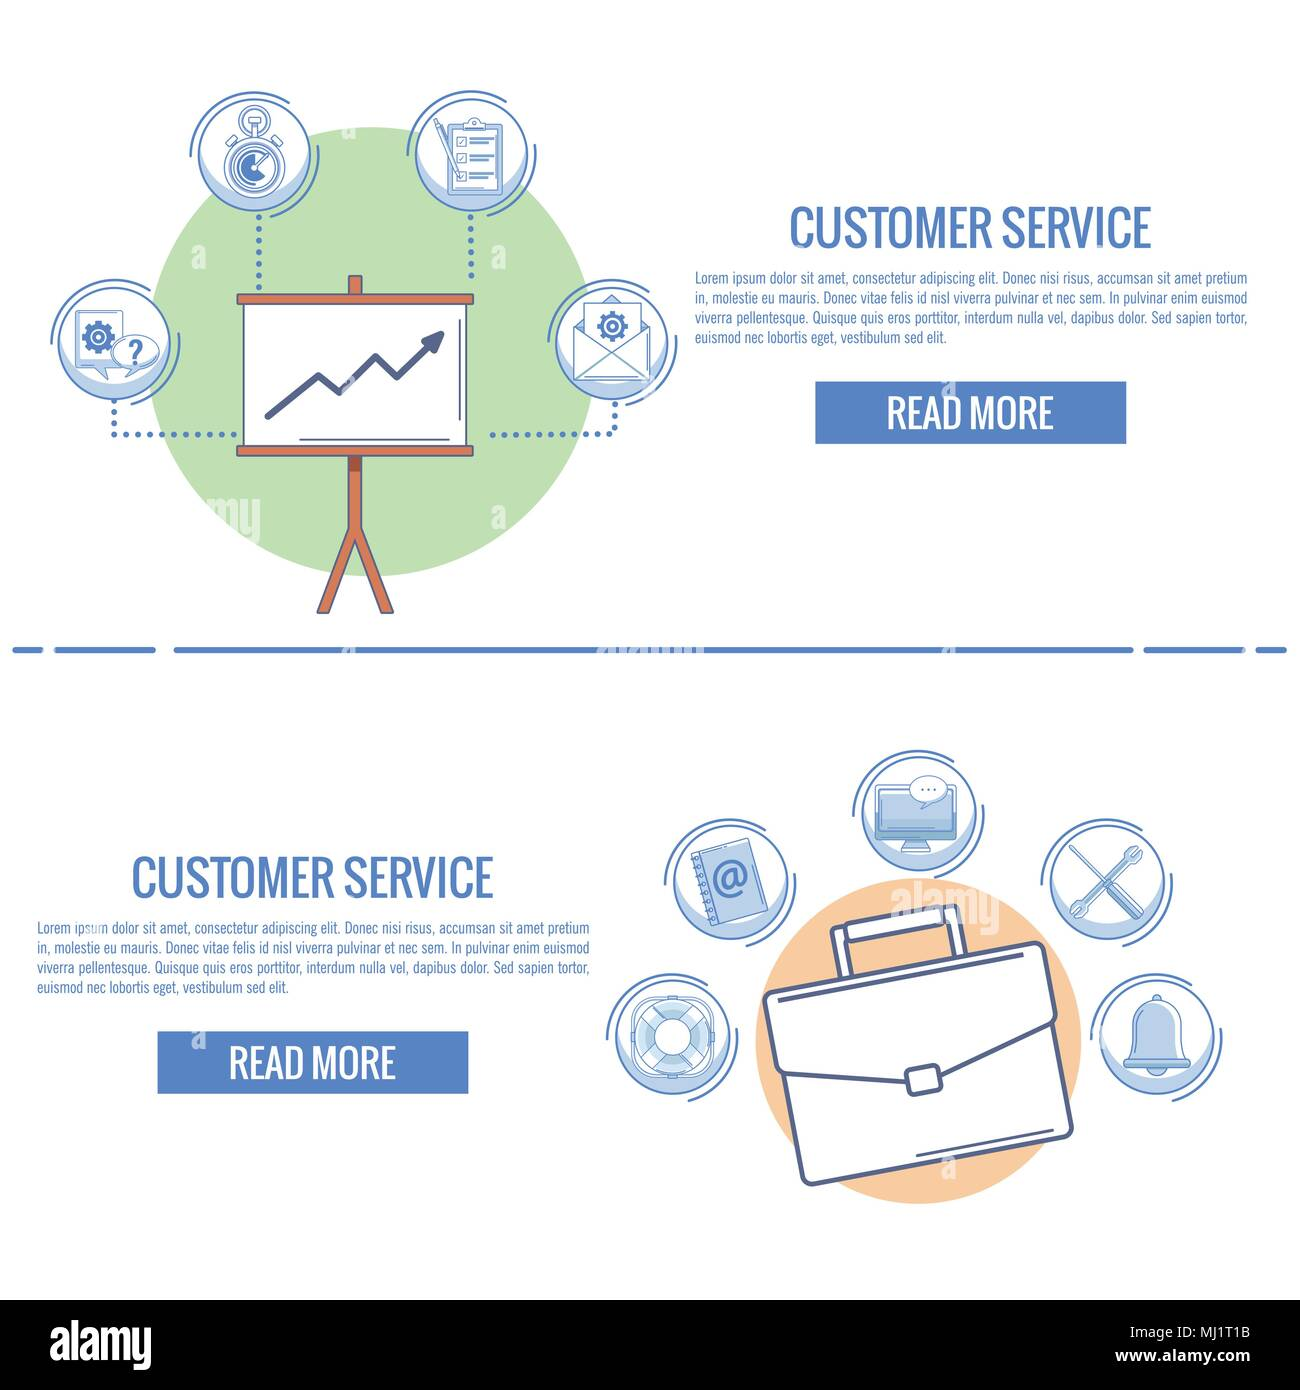 Customer service and support infographic - Stock Vector